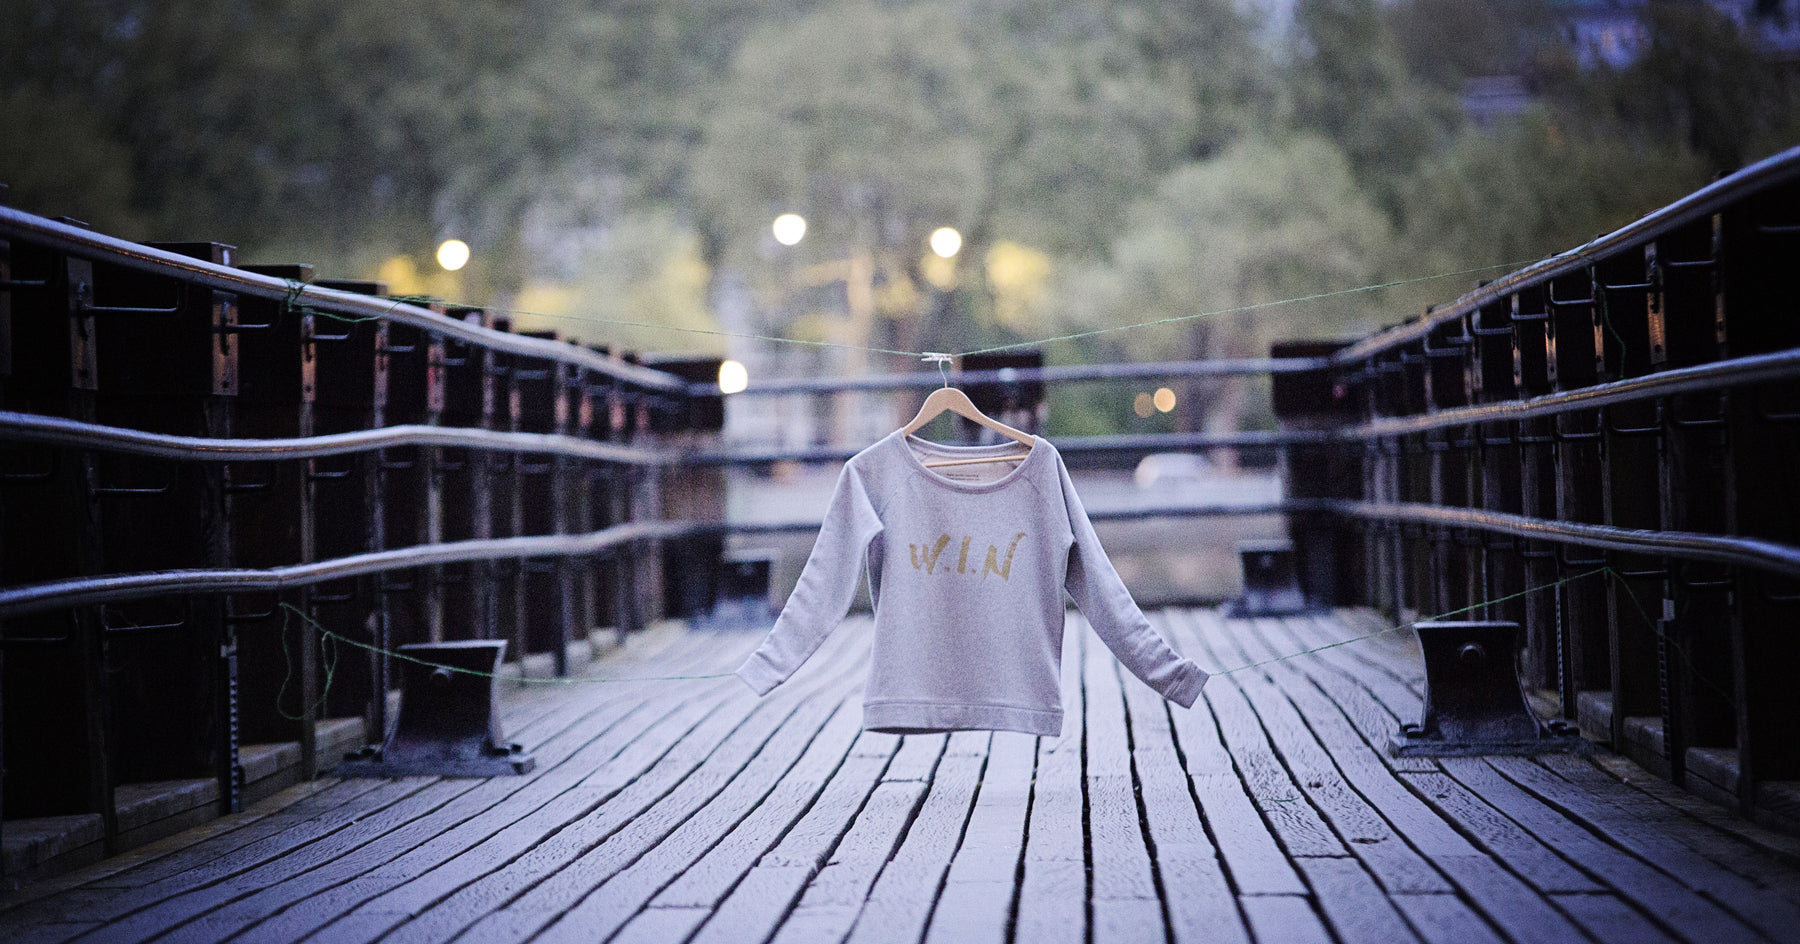 Image of sweatshirt on a jetty over the river Thames.